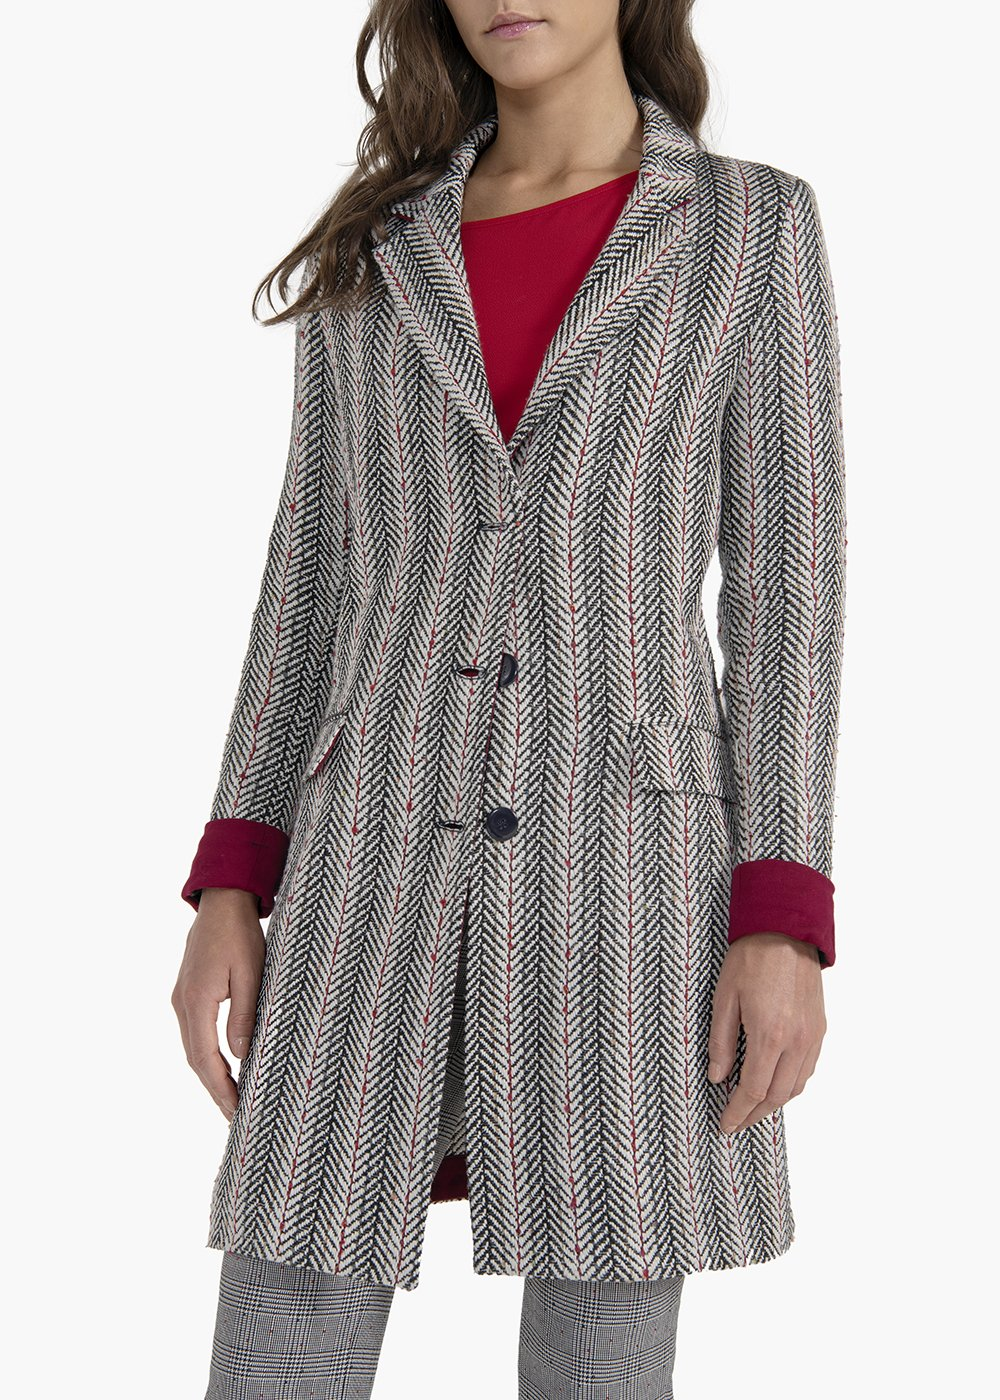 Cristofer single-breasted coat with flap pockets